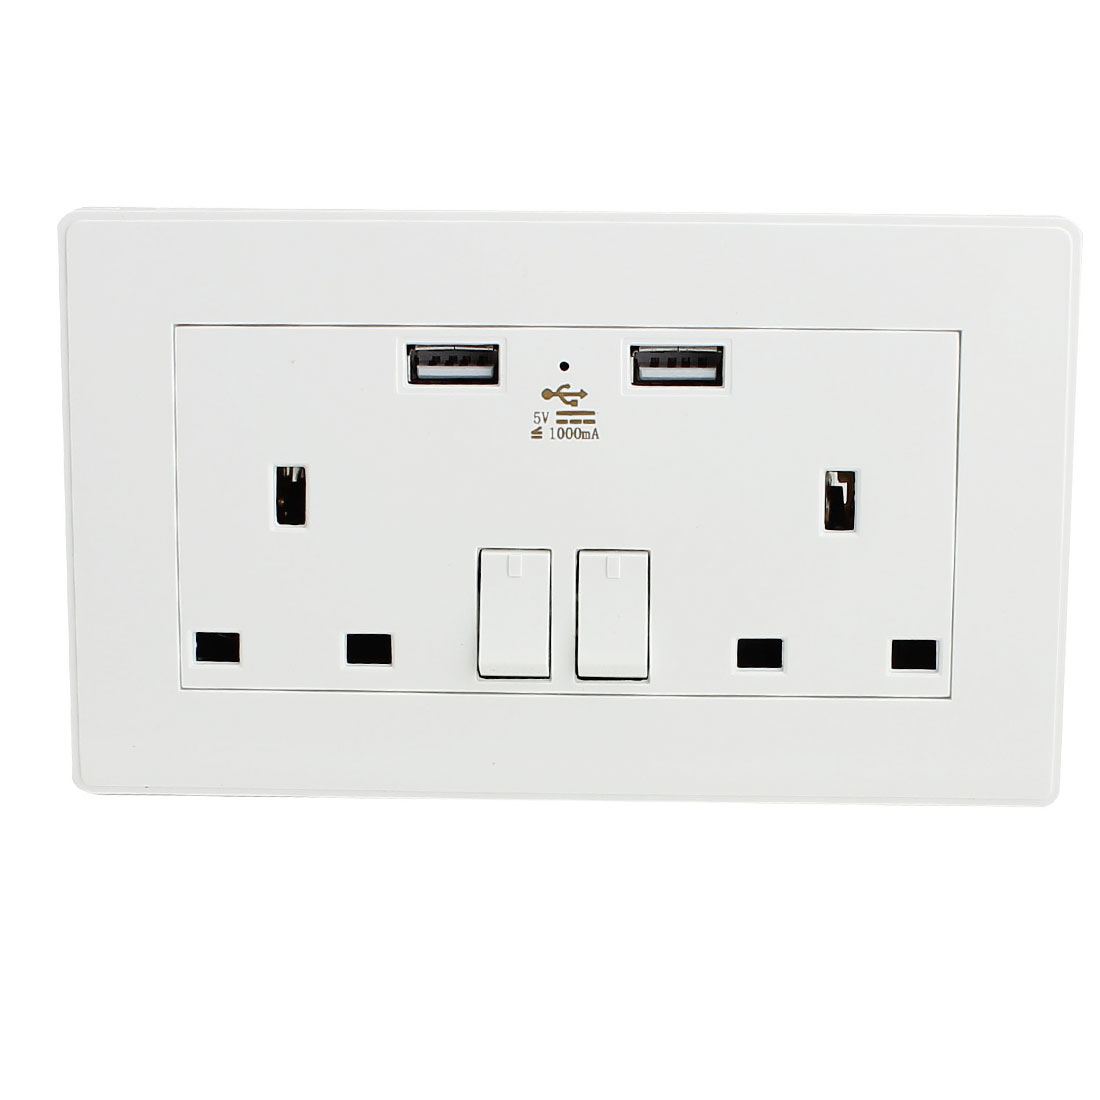 Dual AC 110V-250V UK Socket 2 USB Port 5VDC 1000mA Charger Charging Power Switch Wall Outlet